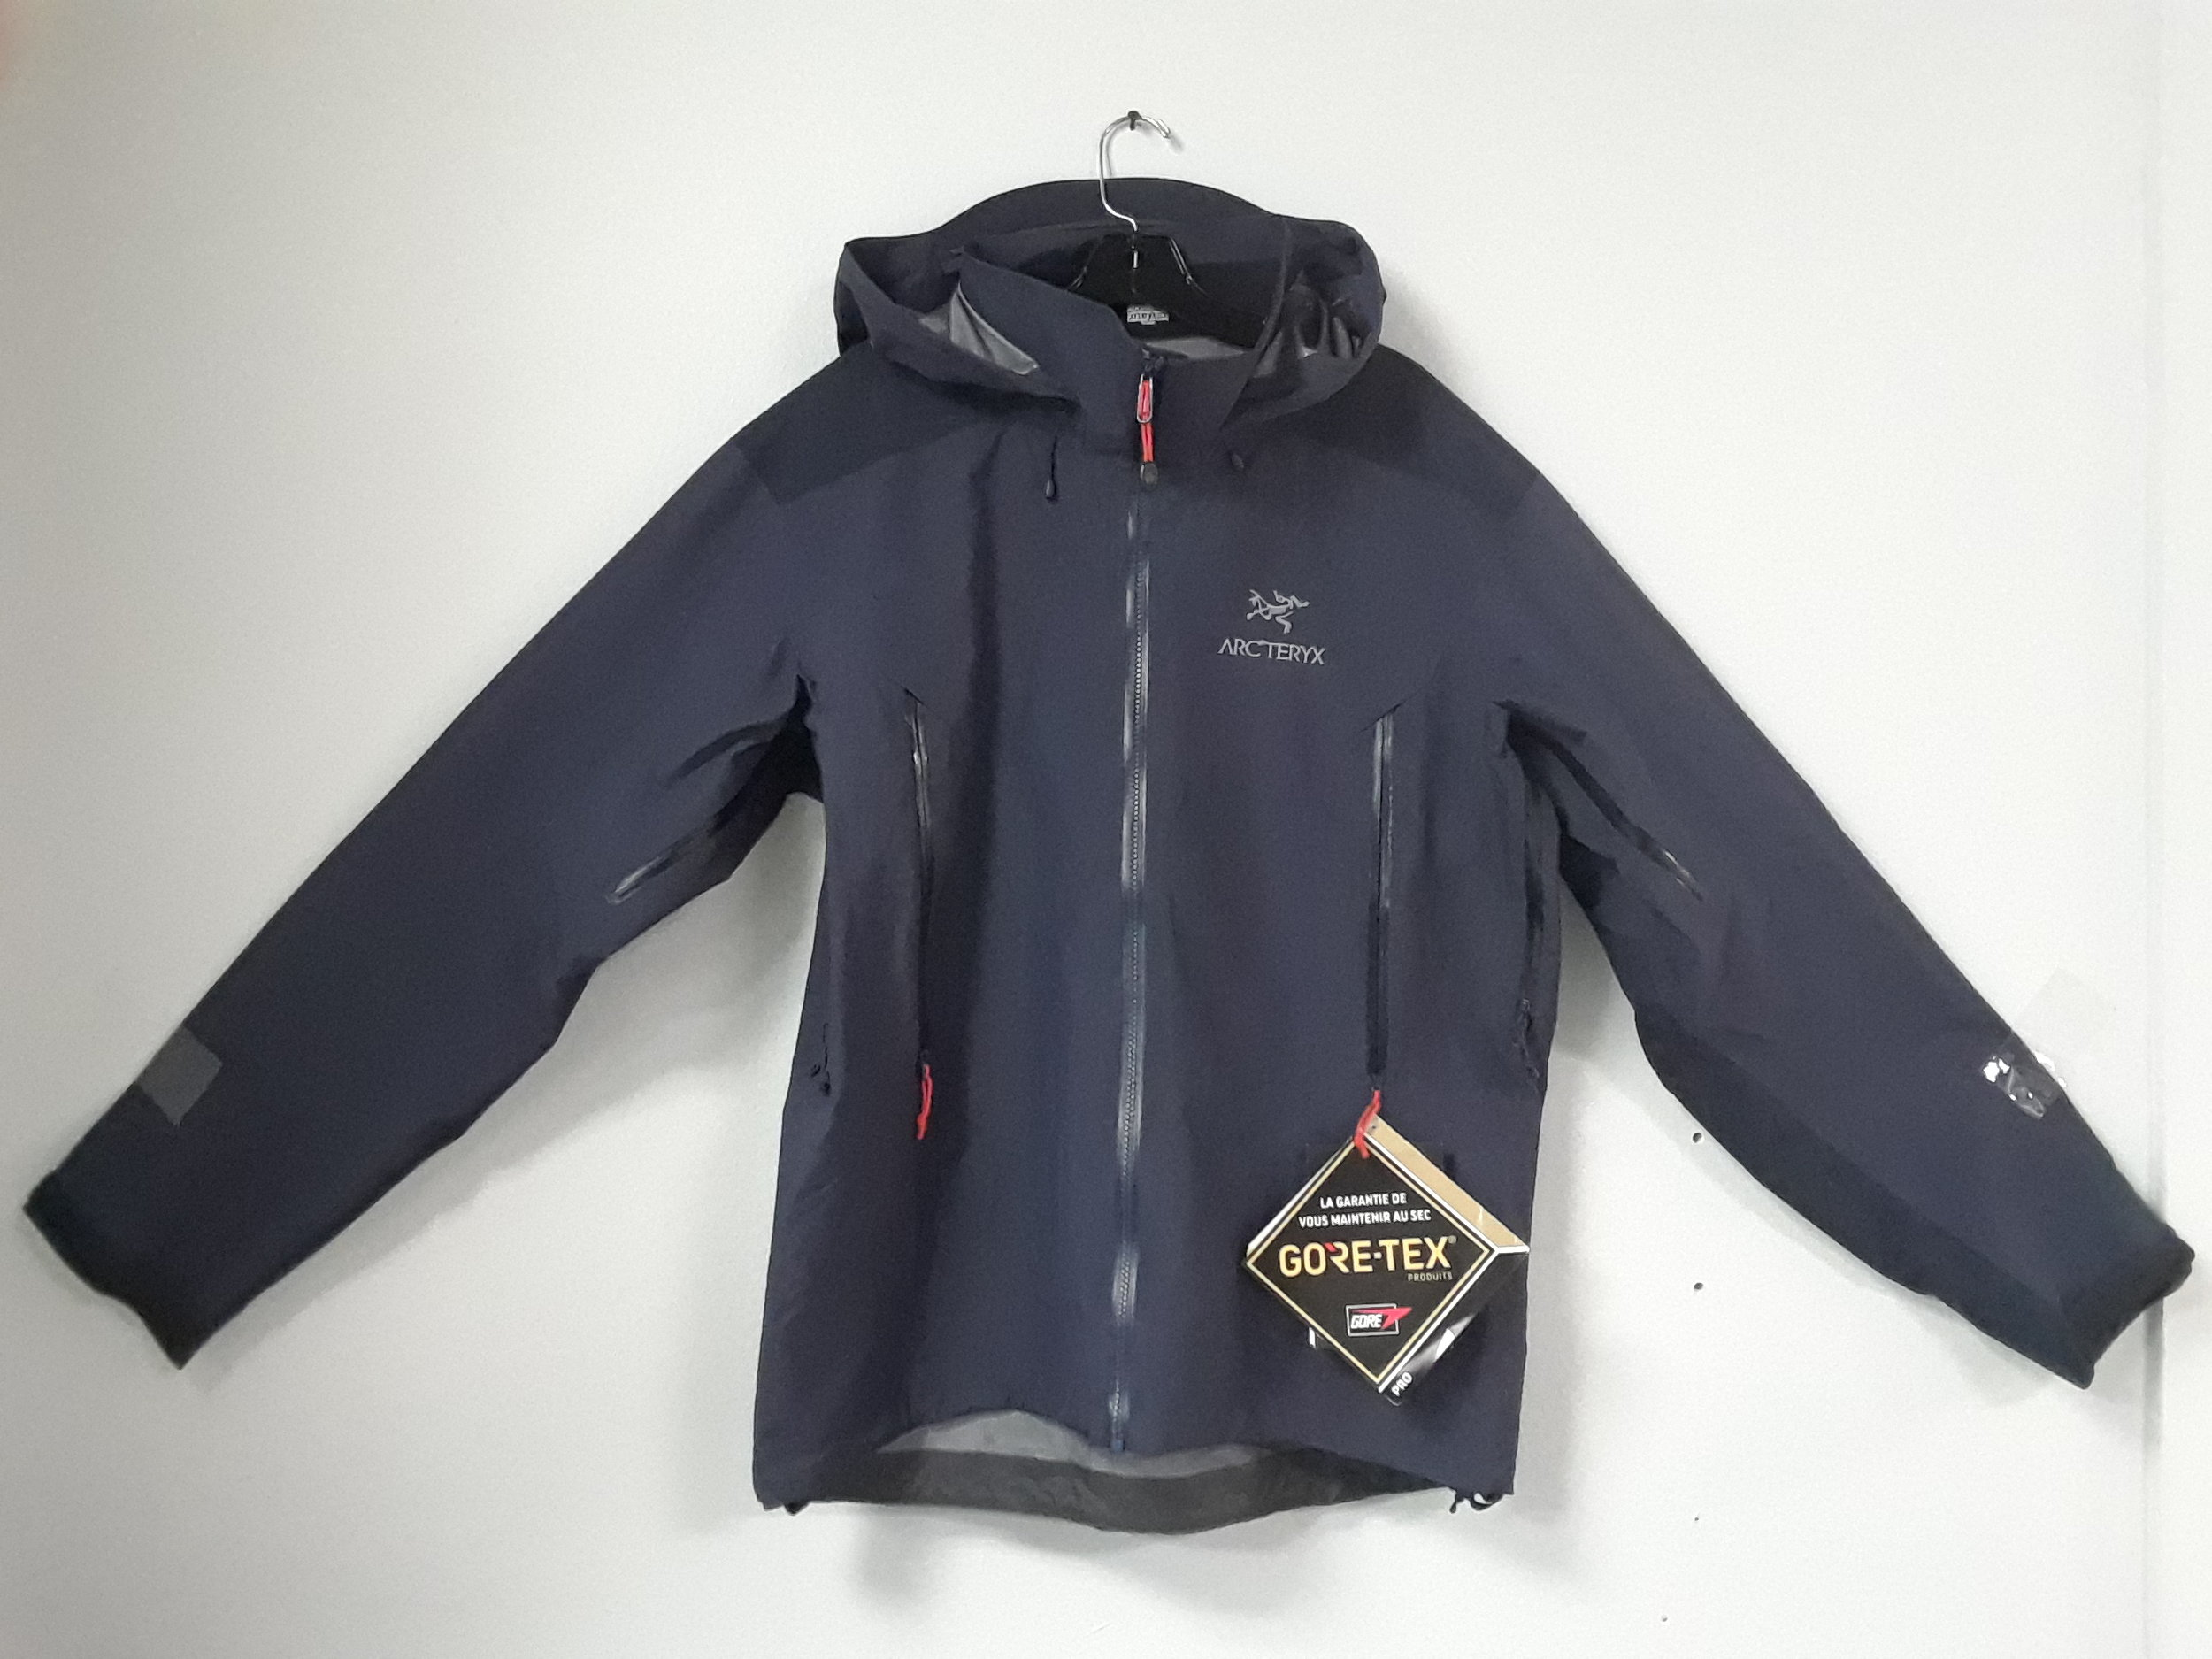 Our consignors have clearly been very generous! The Arcteryx Beta AR featuring Gore-Tex Pro fabric is one of the best performing hard-shell's on the market.Full MSRP is listed at $575 and we have it at $299. Size is a men's large.